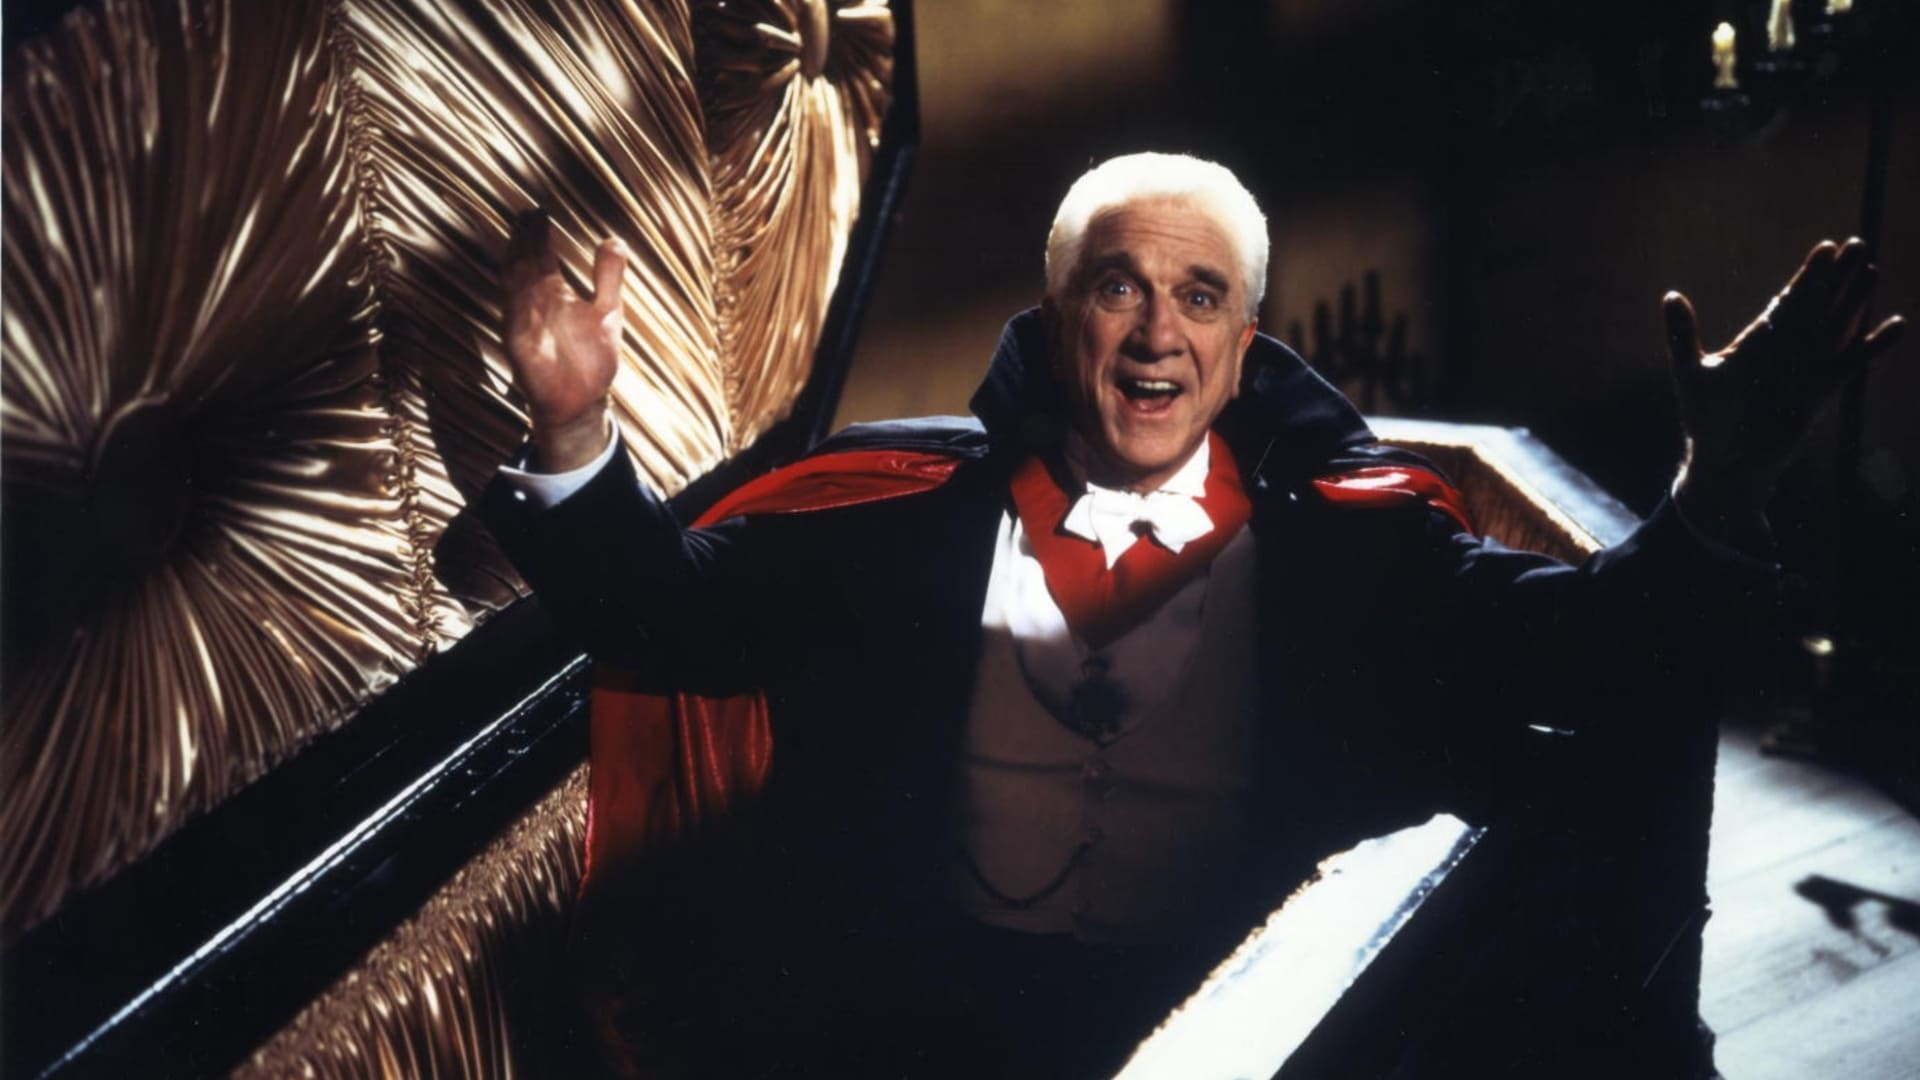 Leslie Nielsen as Count Dracula in Dracula: Dead and Loving It (1995)